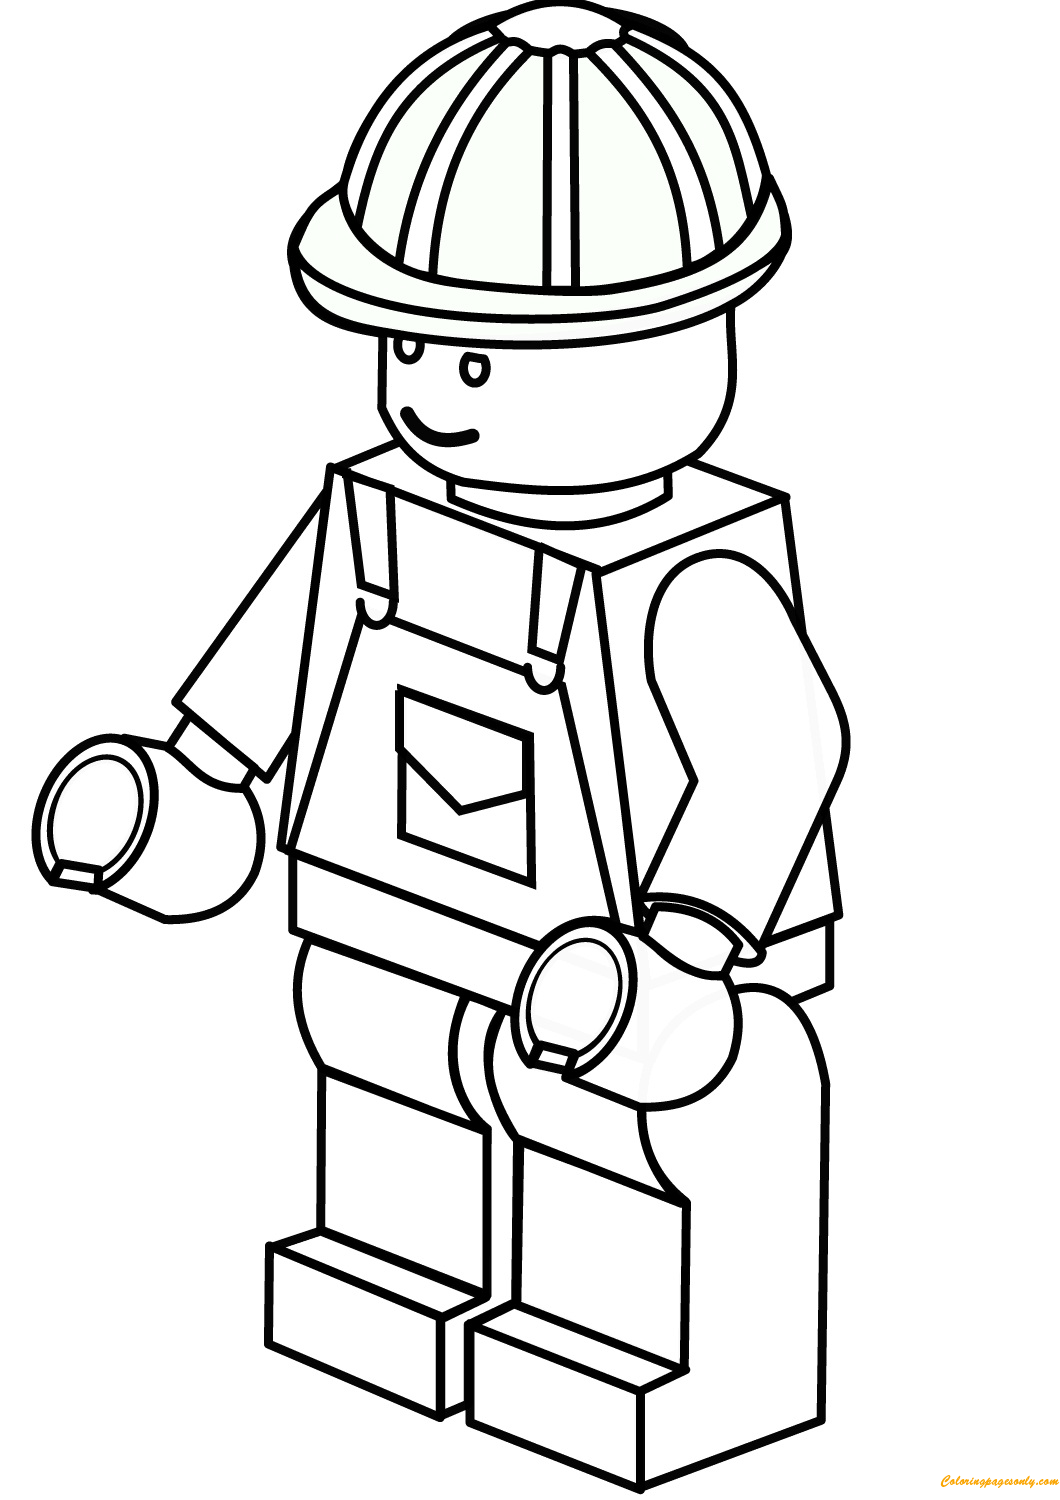 lego construction worker coloring page - Construction Worker Coloring Page